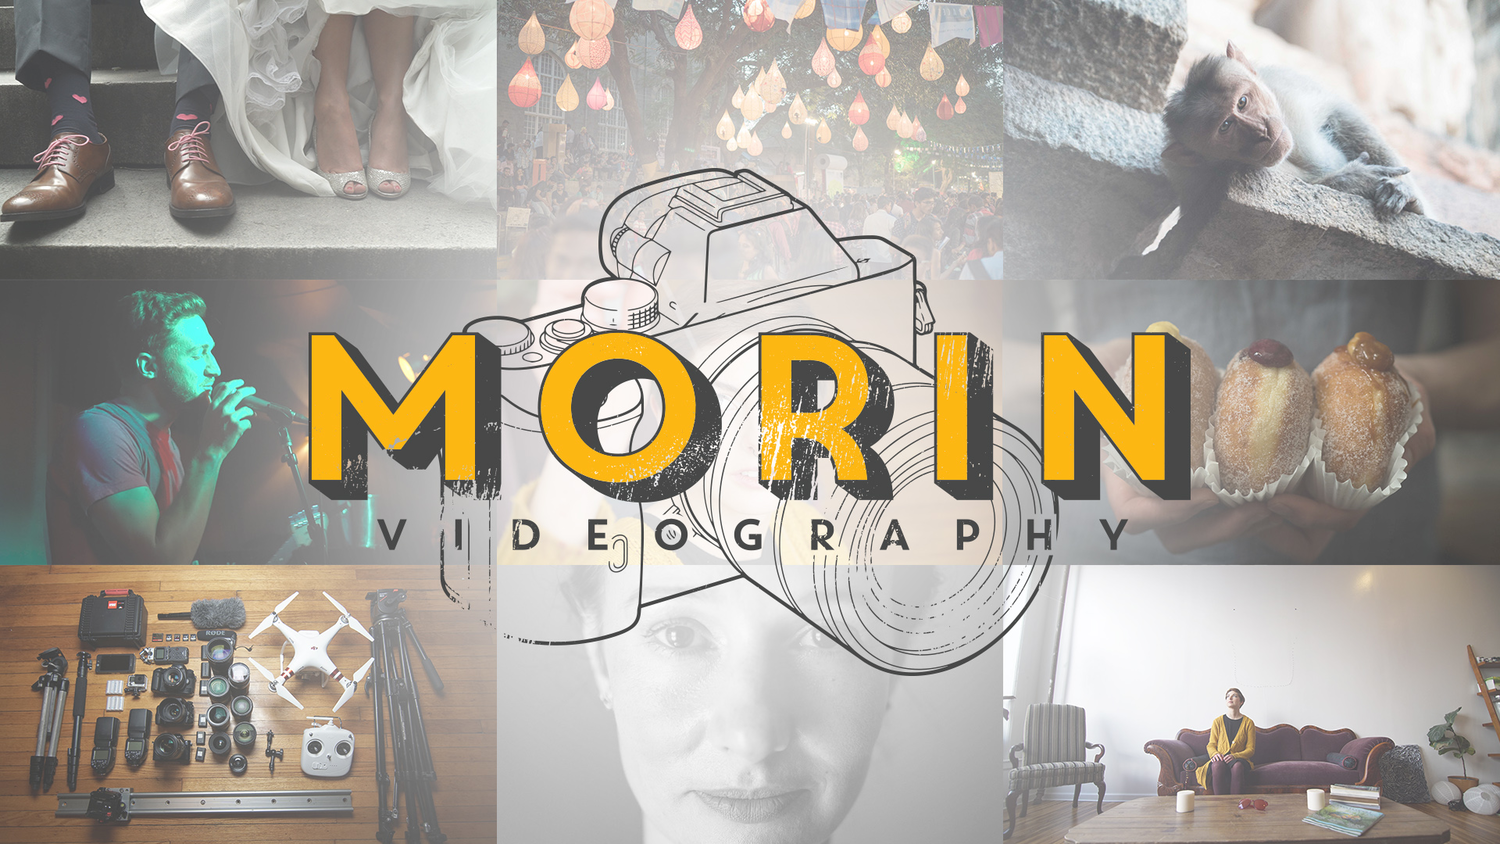 Andy Morin Videography